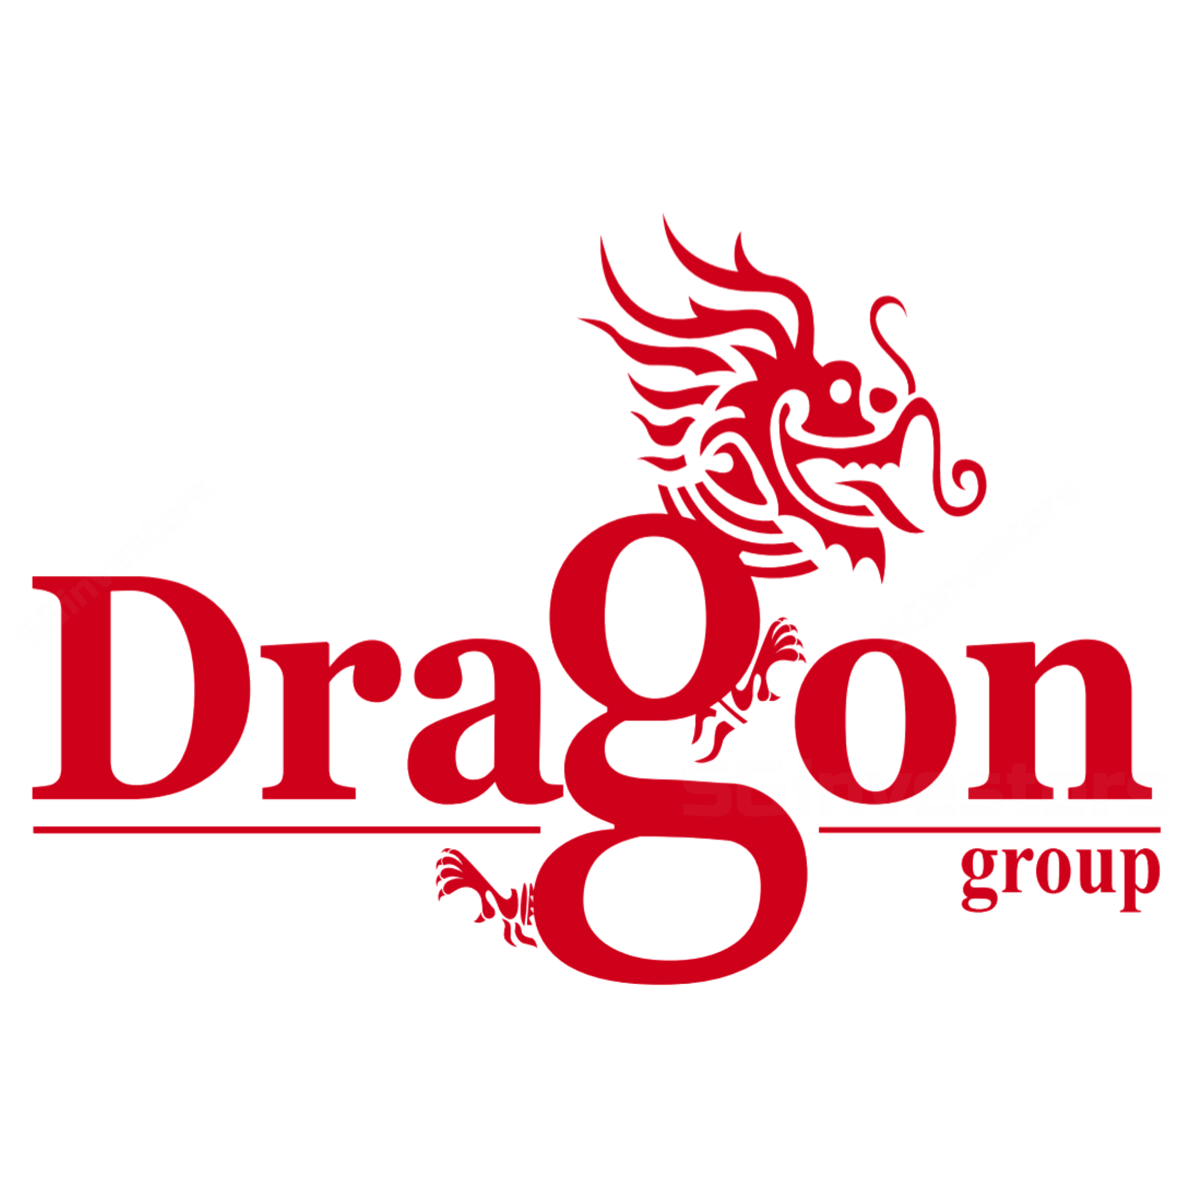 DRAGON GROUP INTL LIMITED (MT1.SI)